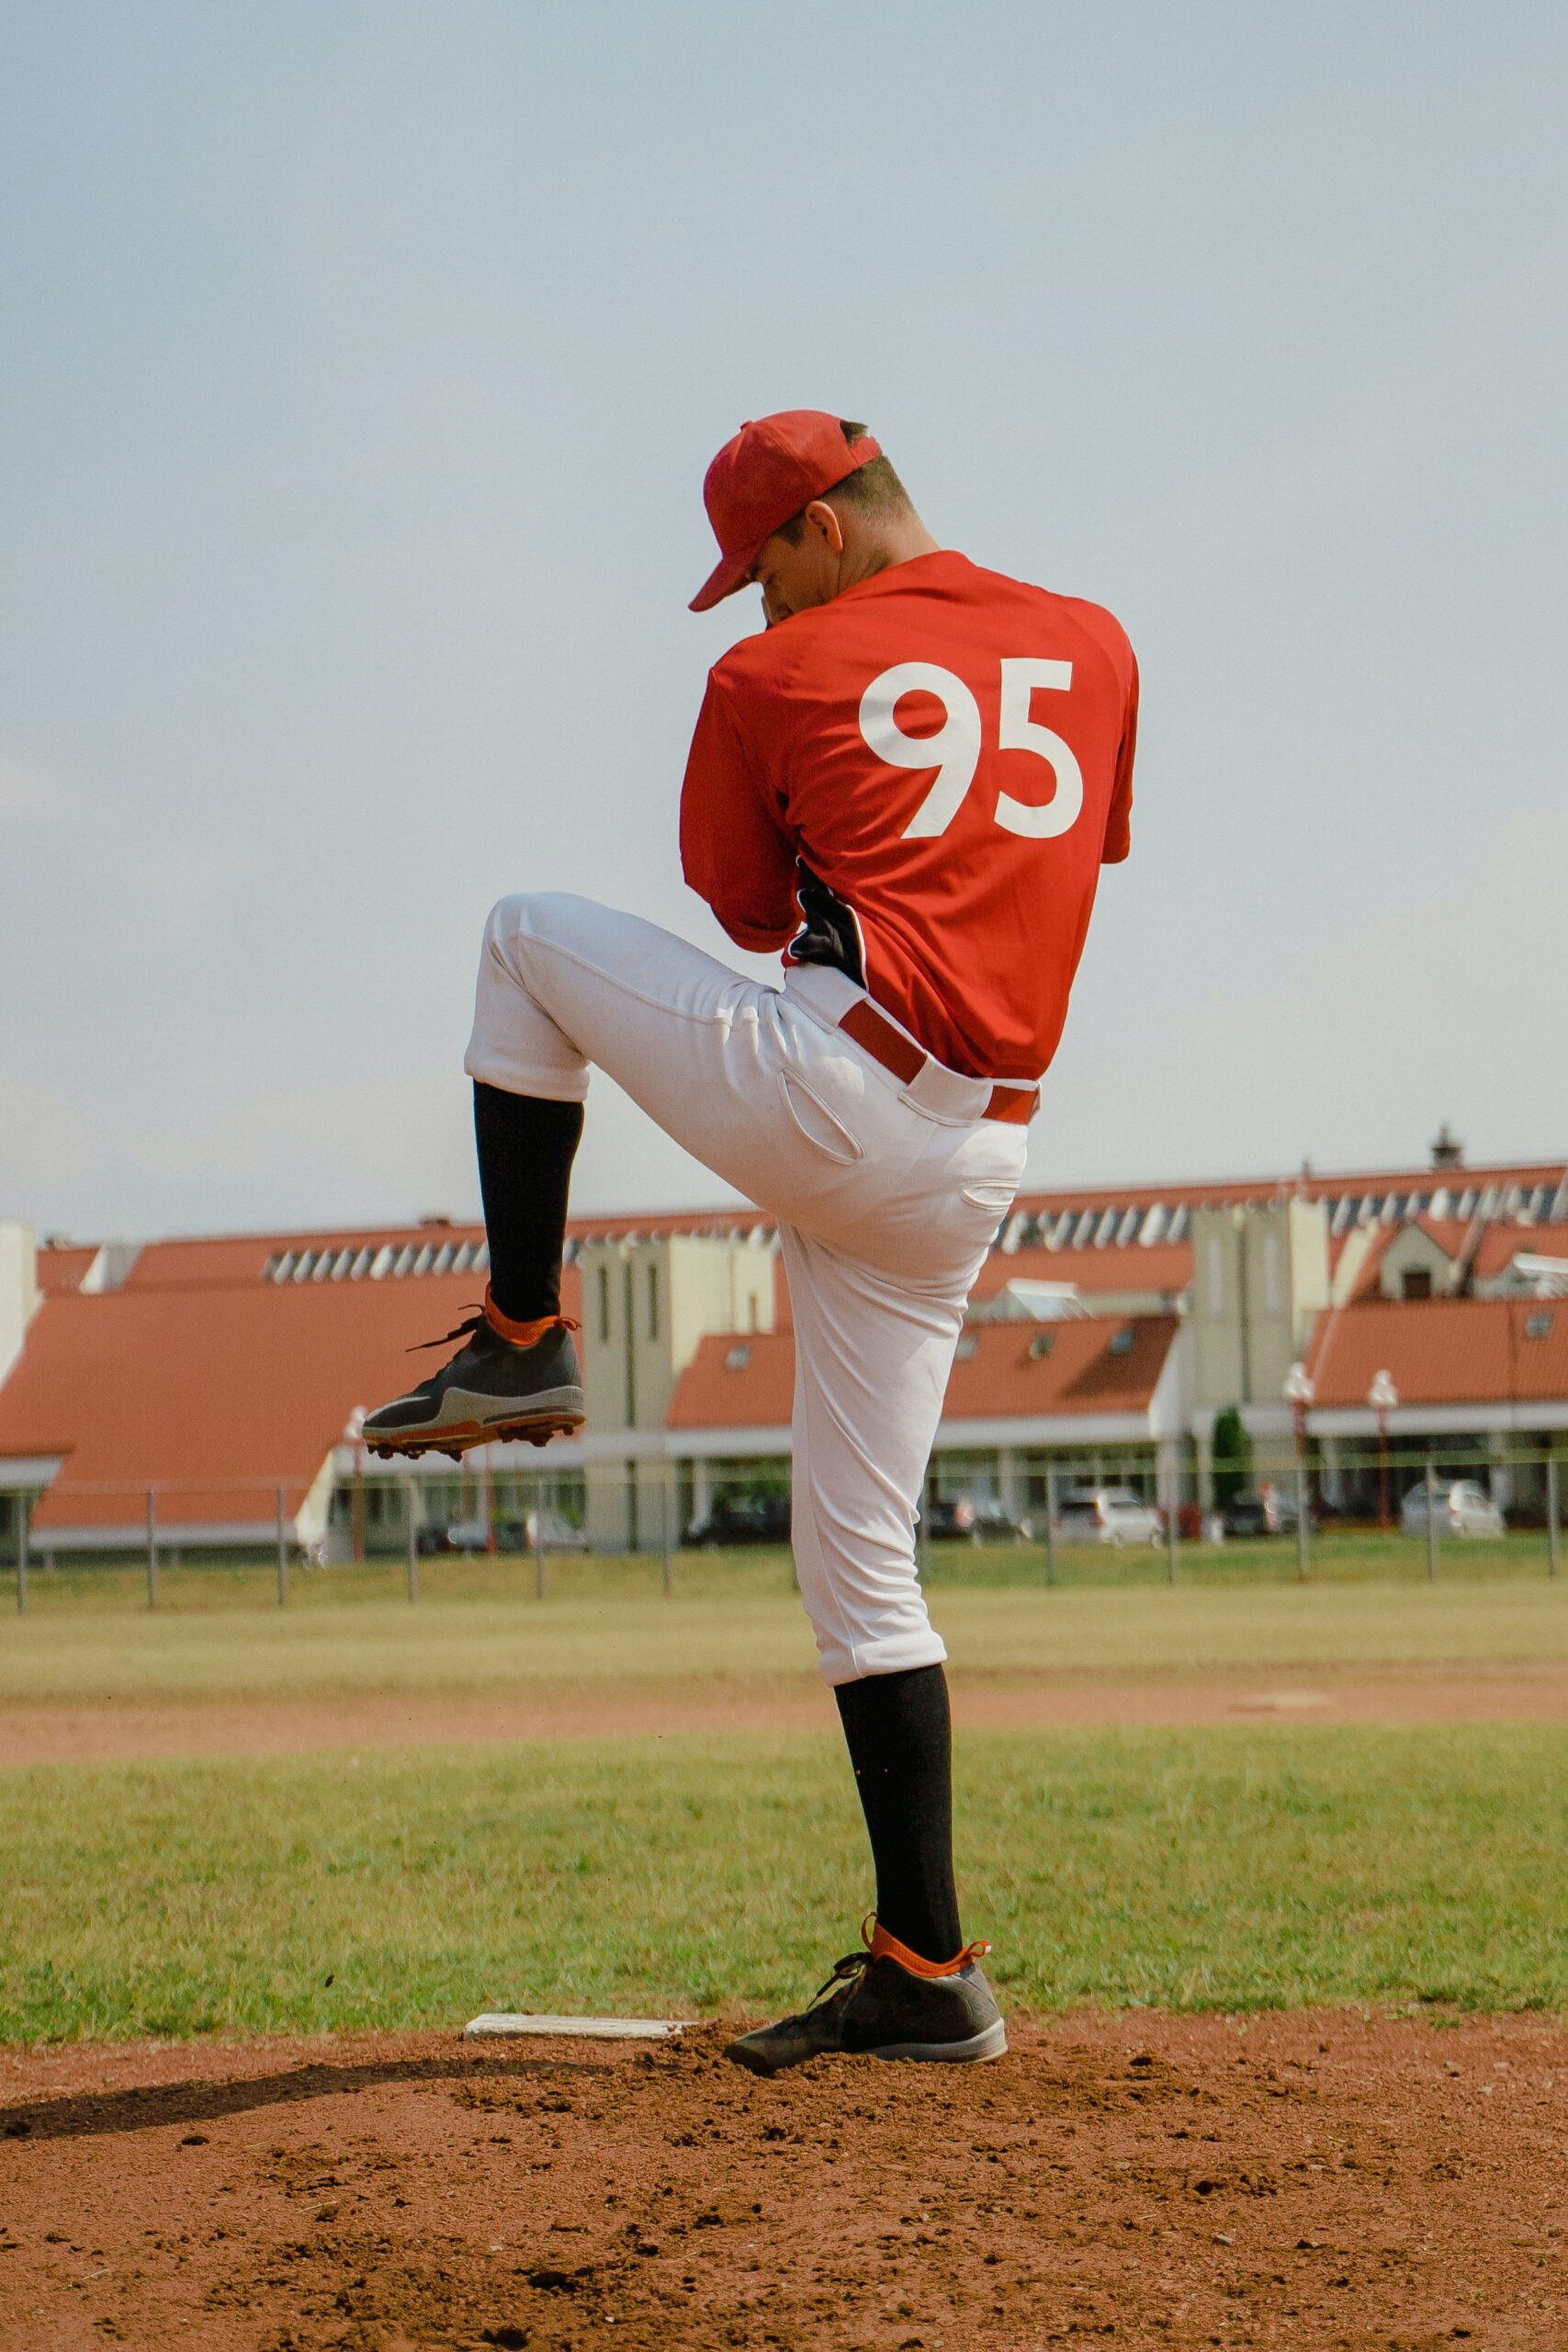 Using Pitching Velocity Effectively for Strikes